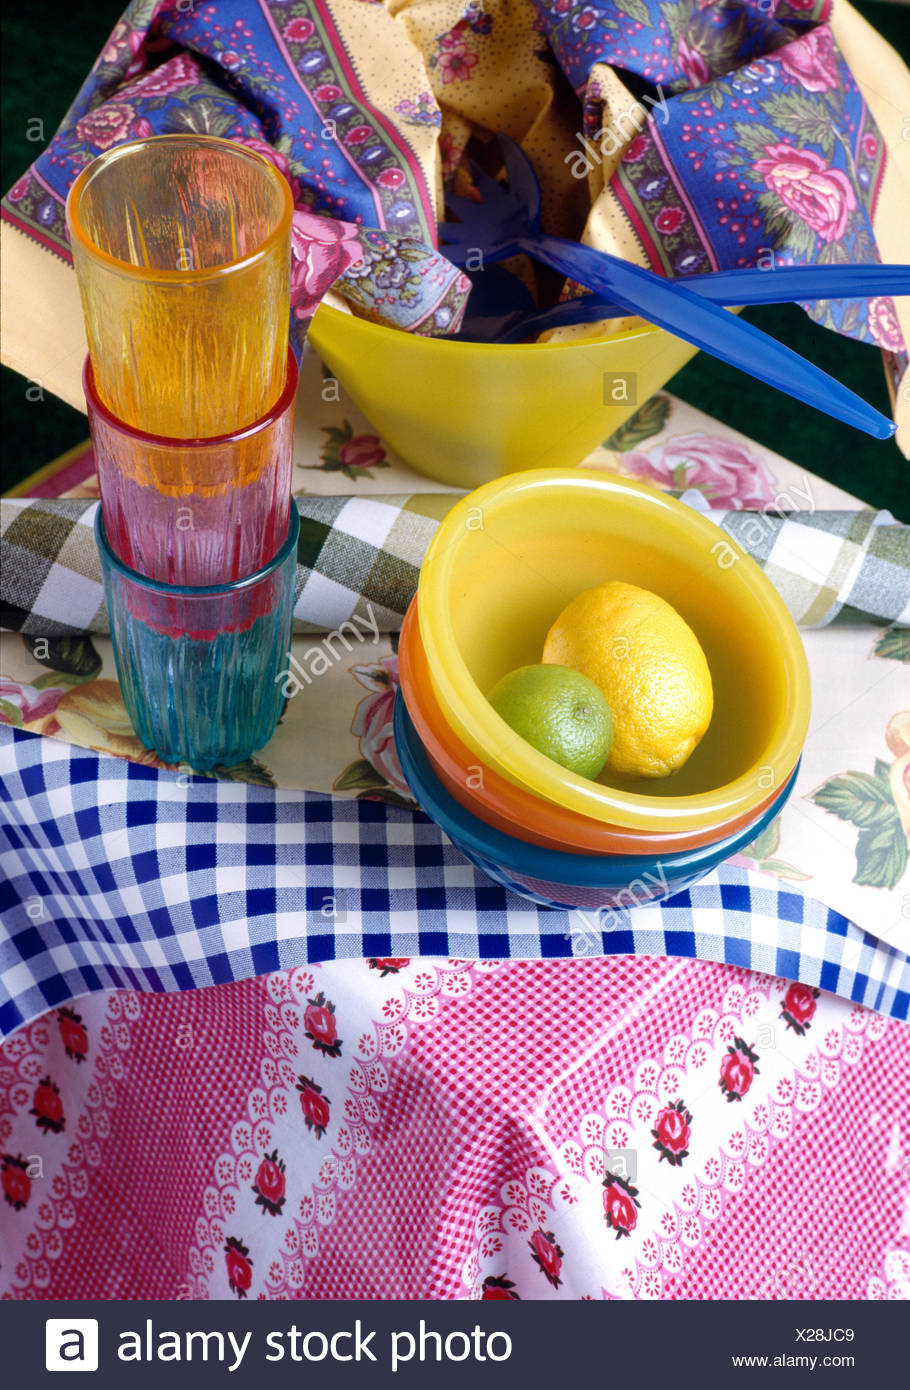 Colourful plastic beakers and bowls ready for picnic Stock Photo